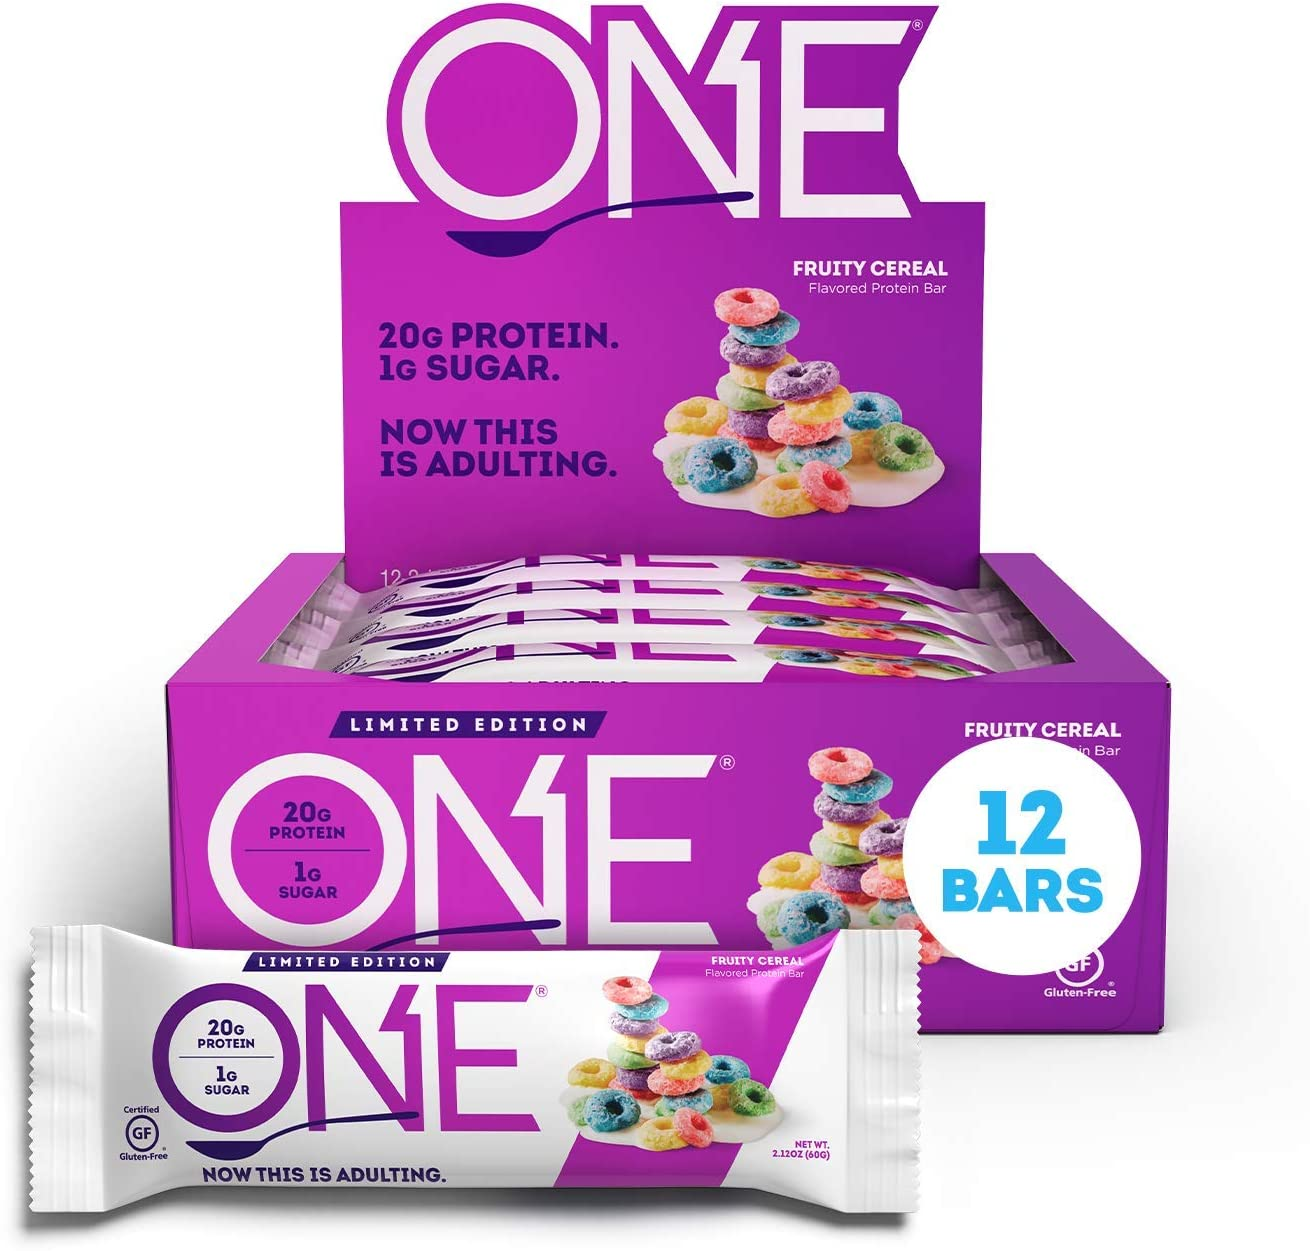 ONE Protein Bars, Fruity Cereal, Gluten-Free Protein Bar with 20g Protein and only 1g Sugar, Snacking for High Protein Diets, 2.12 Ounce (12 Pack)